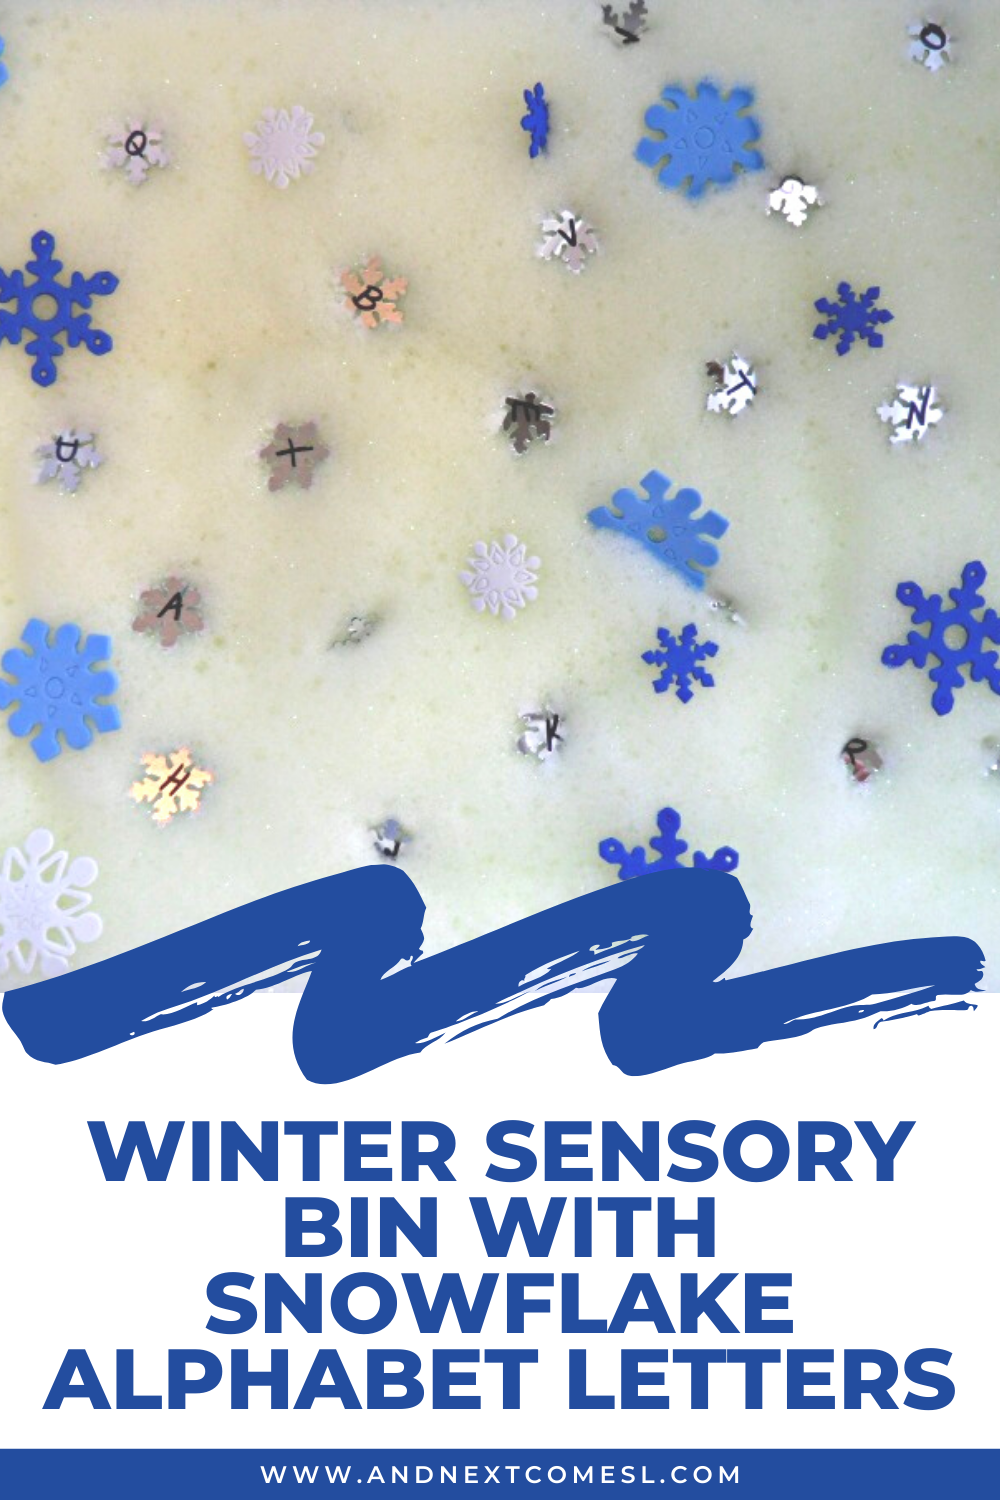 Winter sensory bin with snowflake alphabet letters for toddlers and preschool kids